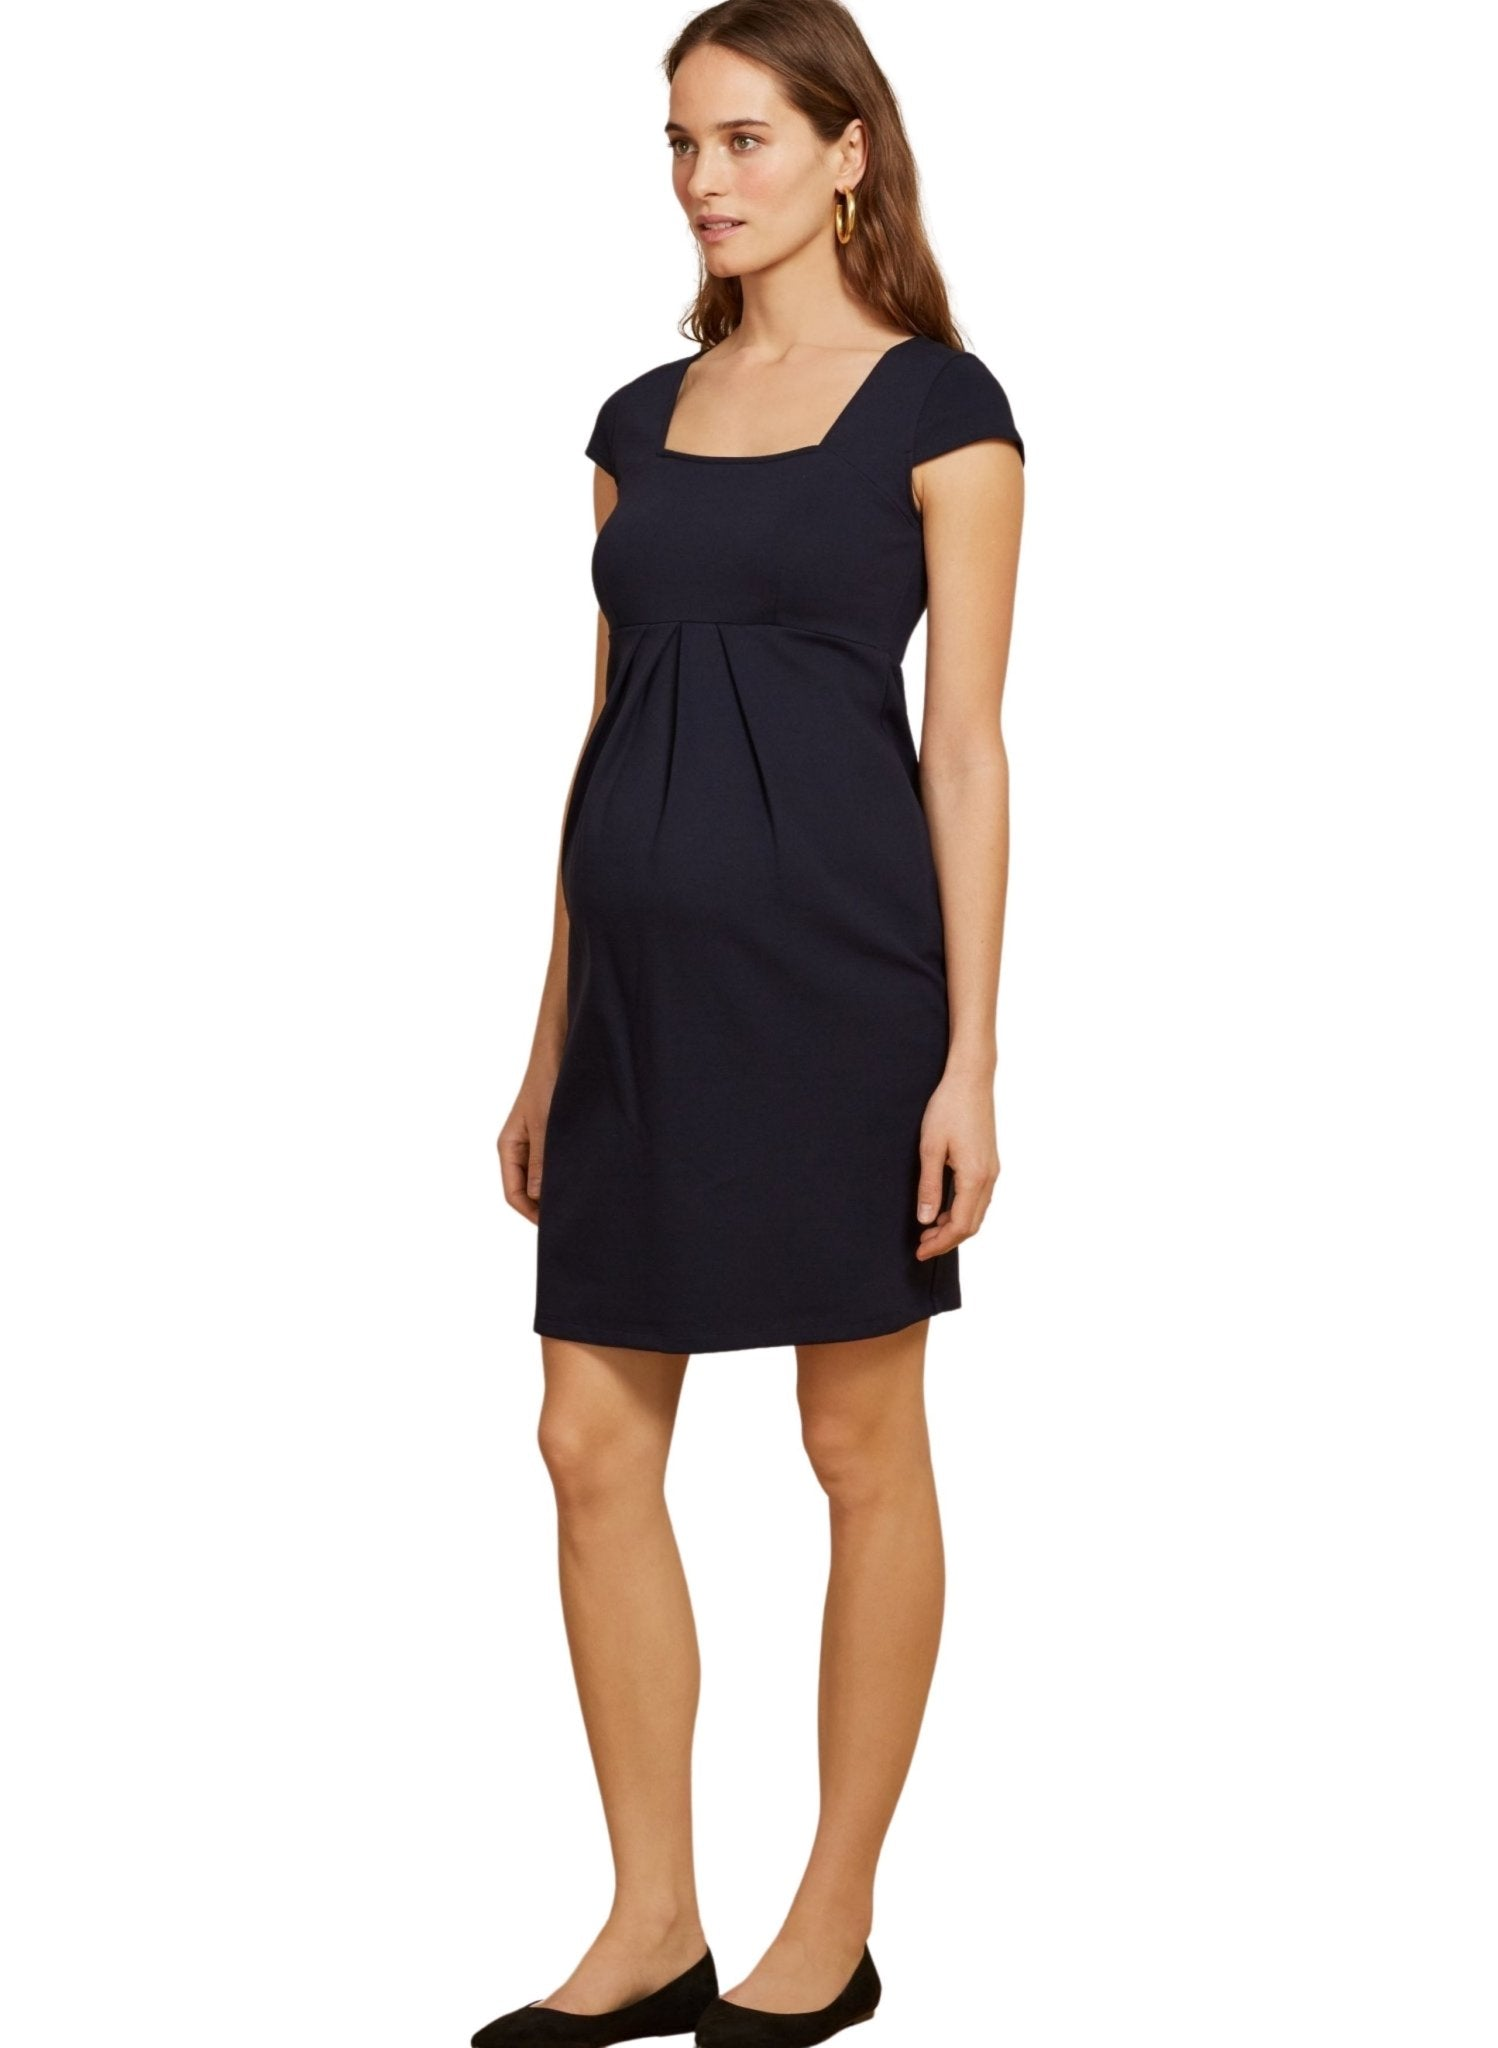 Farah Maternity Shift Dress - Mums and Bumps